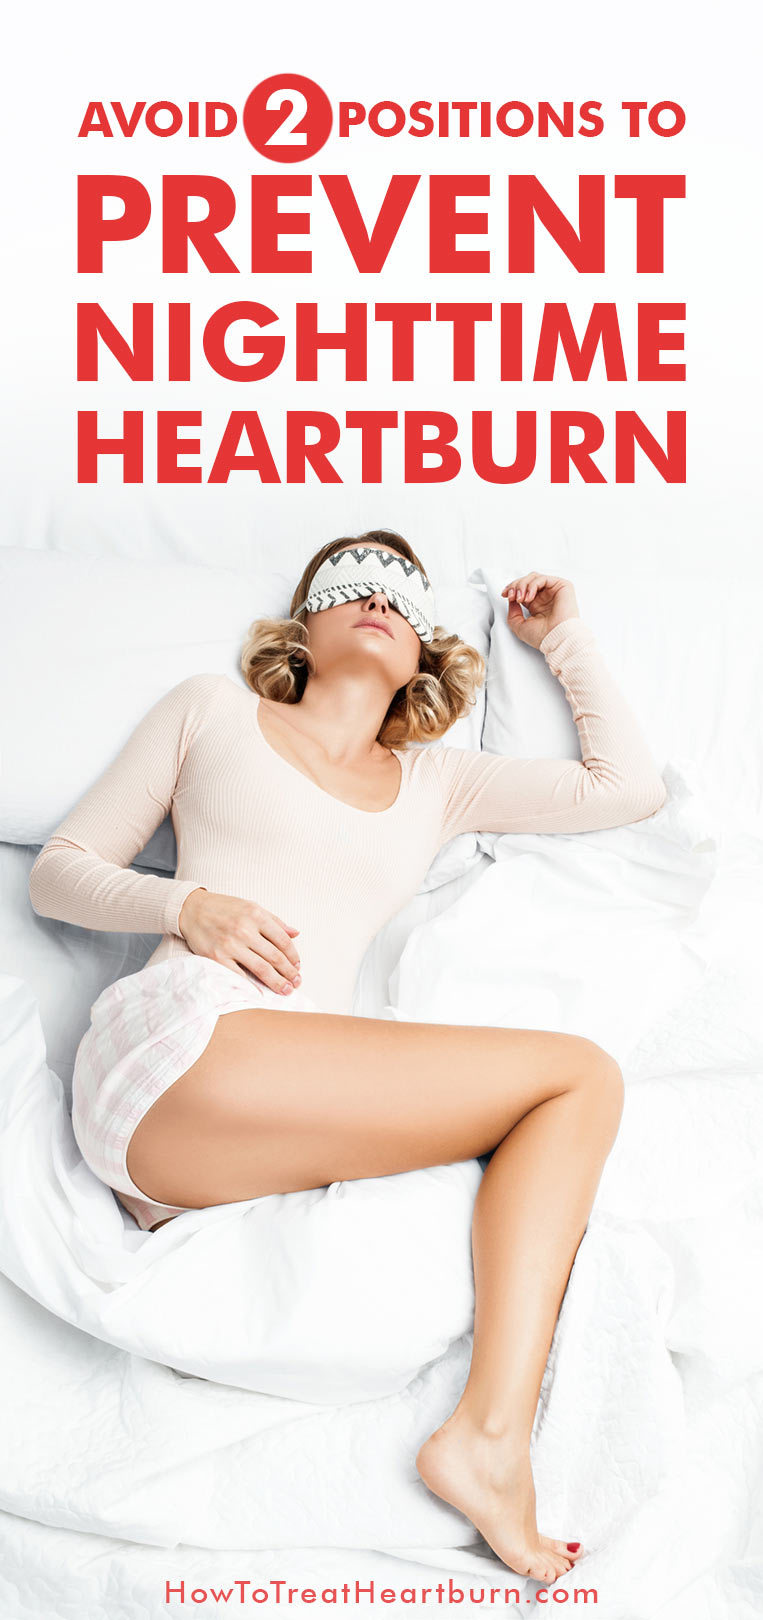 Do you experience nighttime heartburn? Nighttime heartburn can bring painful symptoms of a sore throat, regurgitation, coughing, choking, and chronic sinus issues. There is a simple fix for relieving nighttime heartburn. Avoid these two positions to prevent nighttime heartburn.